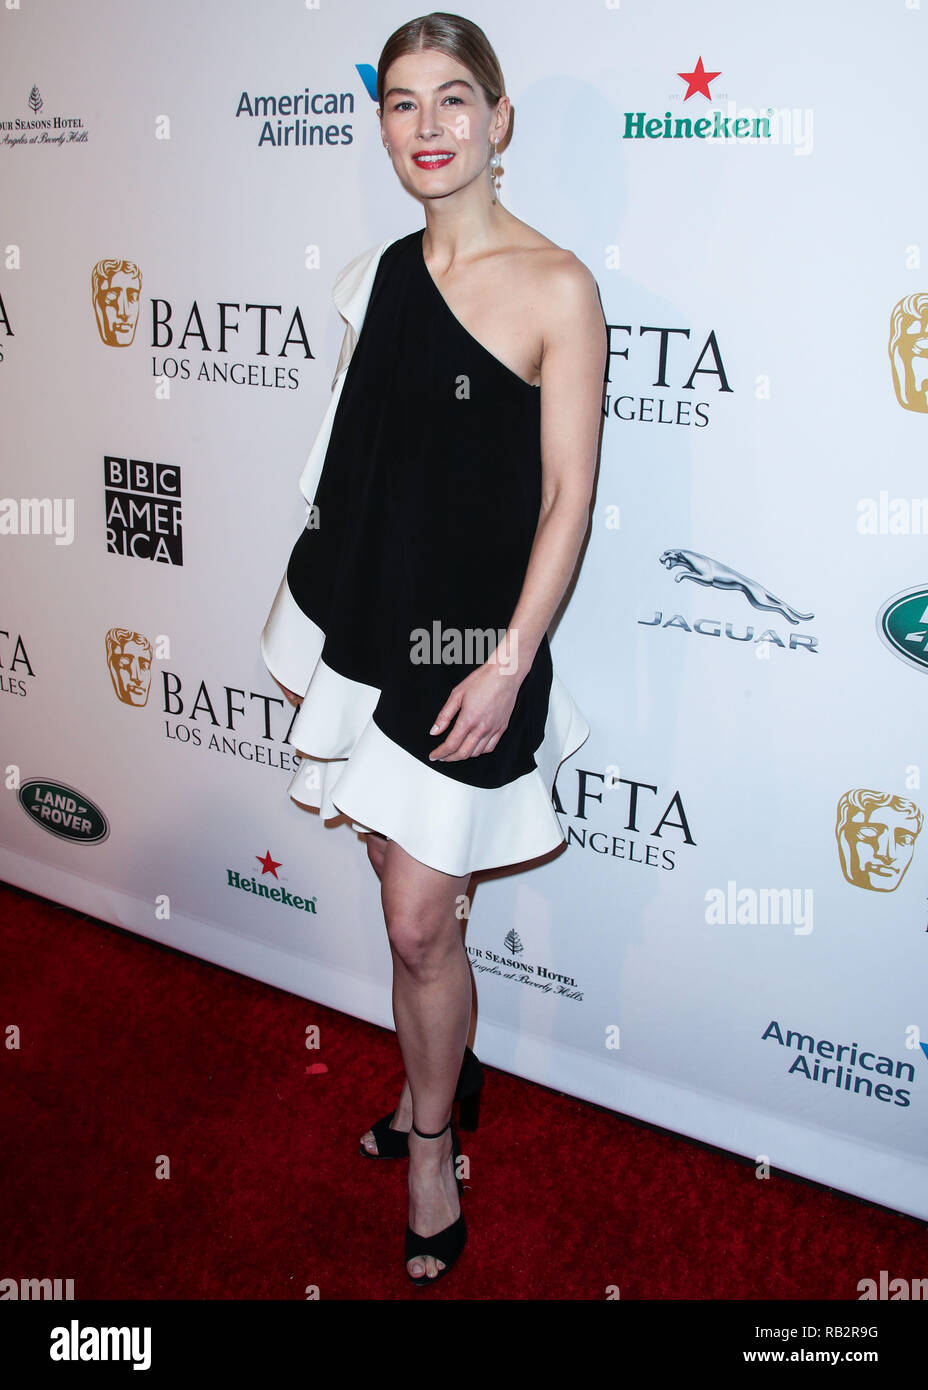 California, USA. 5th Jan 2019. Actress Rosamund Pike wearing Pierre Hardy shoes arrives at the BAFTA (British Academy of Film and Television Arts) Los Angeles Tea Party 2019 held at the Four Seasons Hotel Los Angeles at Beverly Hills on January 5, 2019 in Beverly Hills, Los Angeles, California, United States. (Photo by Xavier Collin/Image Press Agency) Credit: Image Press Agency/Alamy Live News Stock Photo